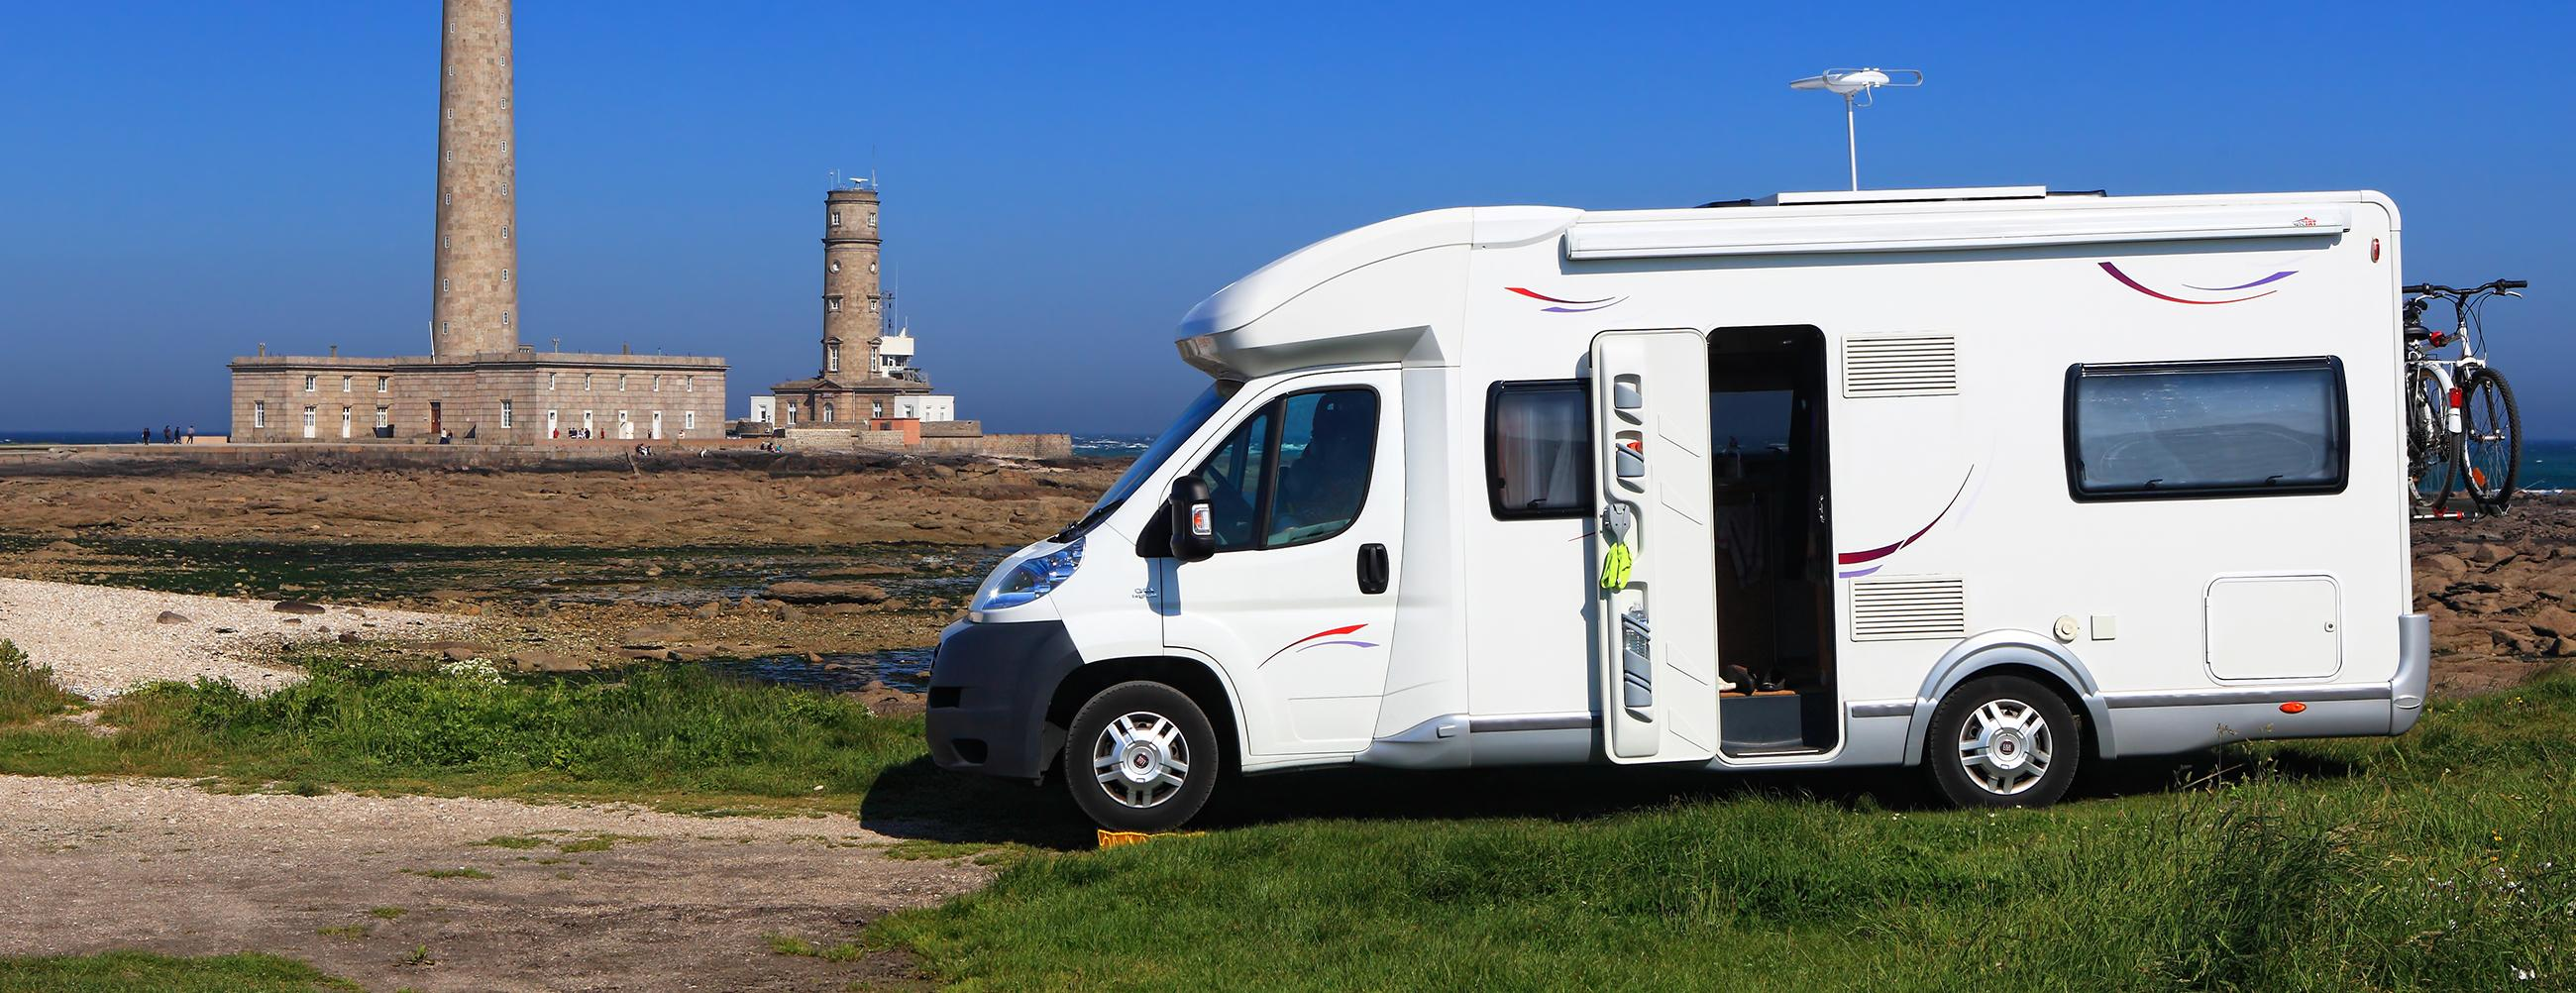 Camping car occasion poperinge